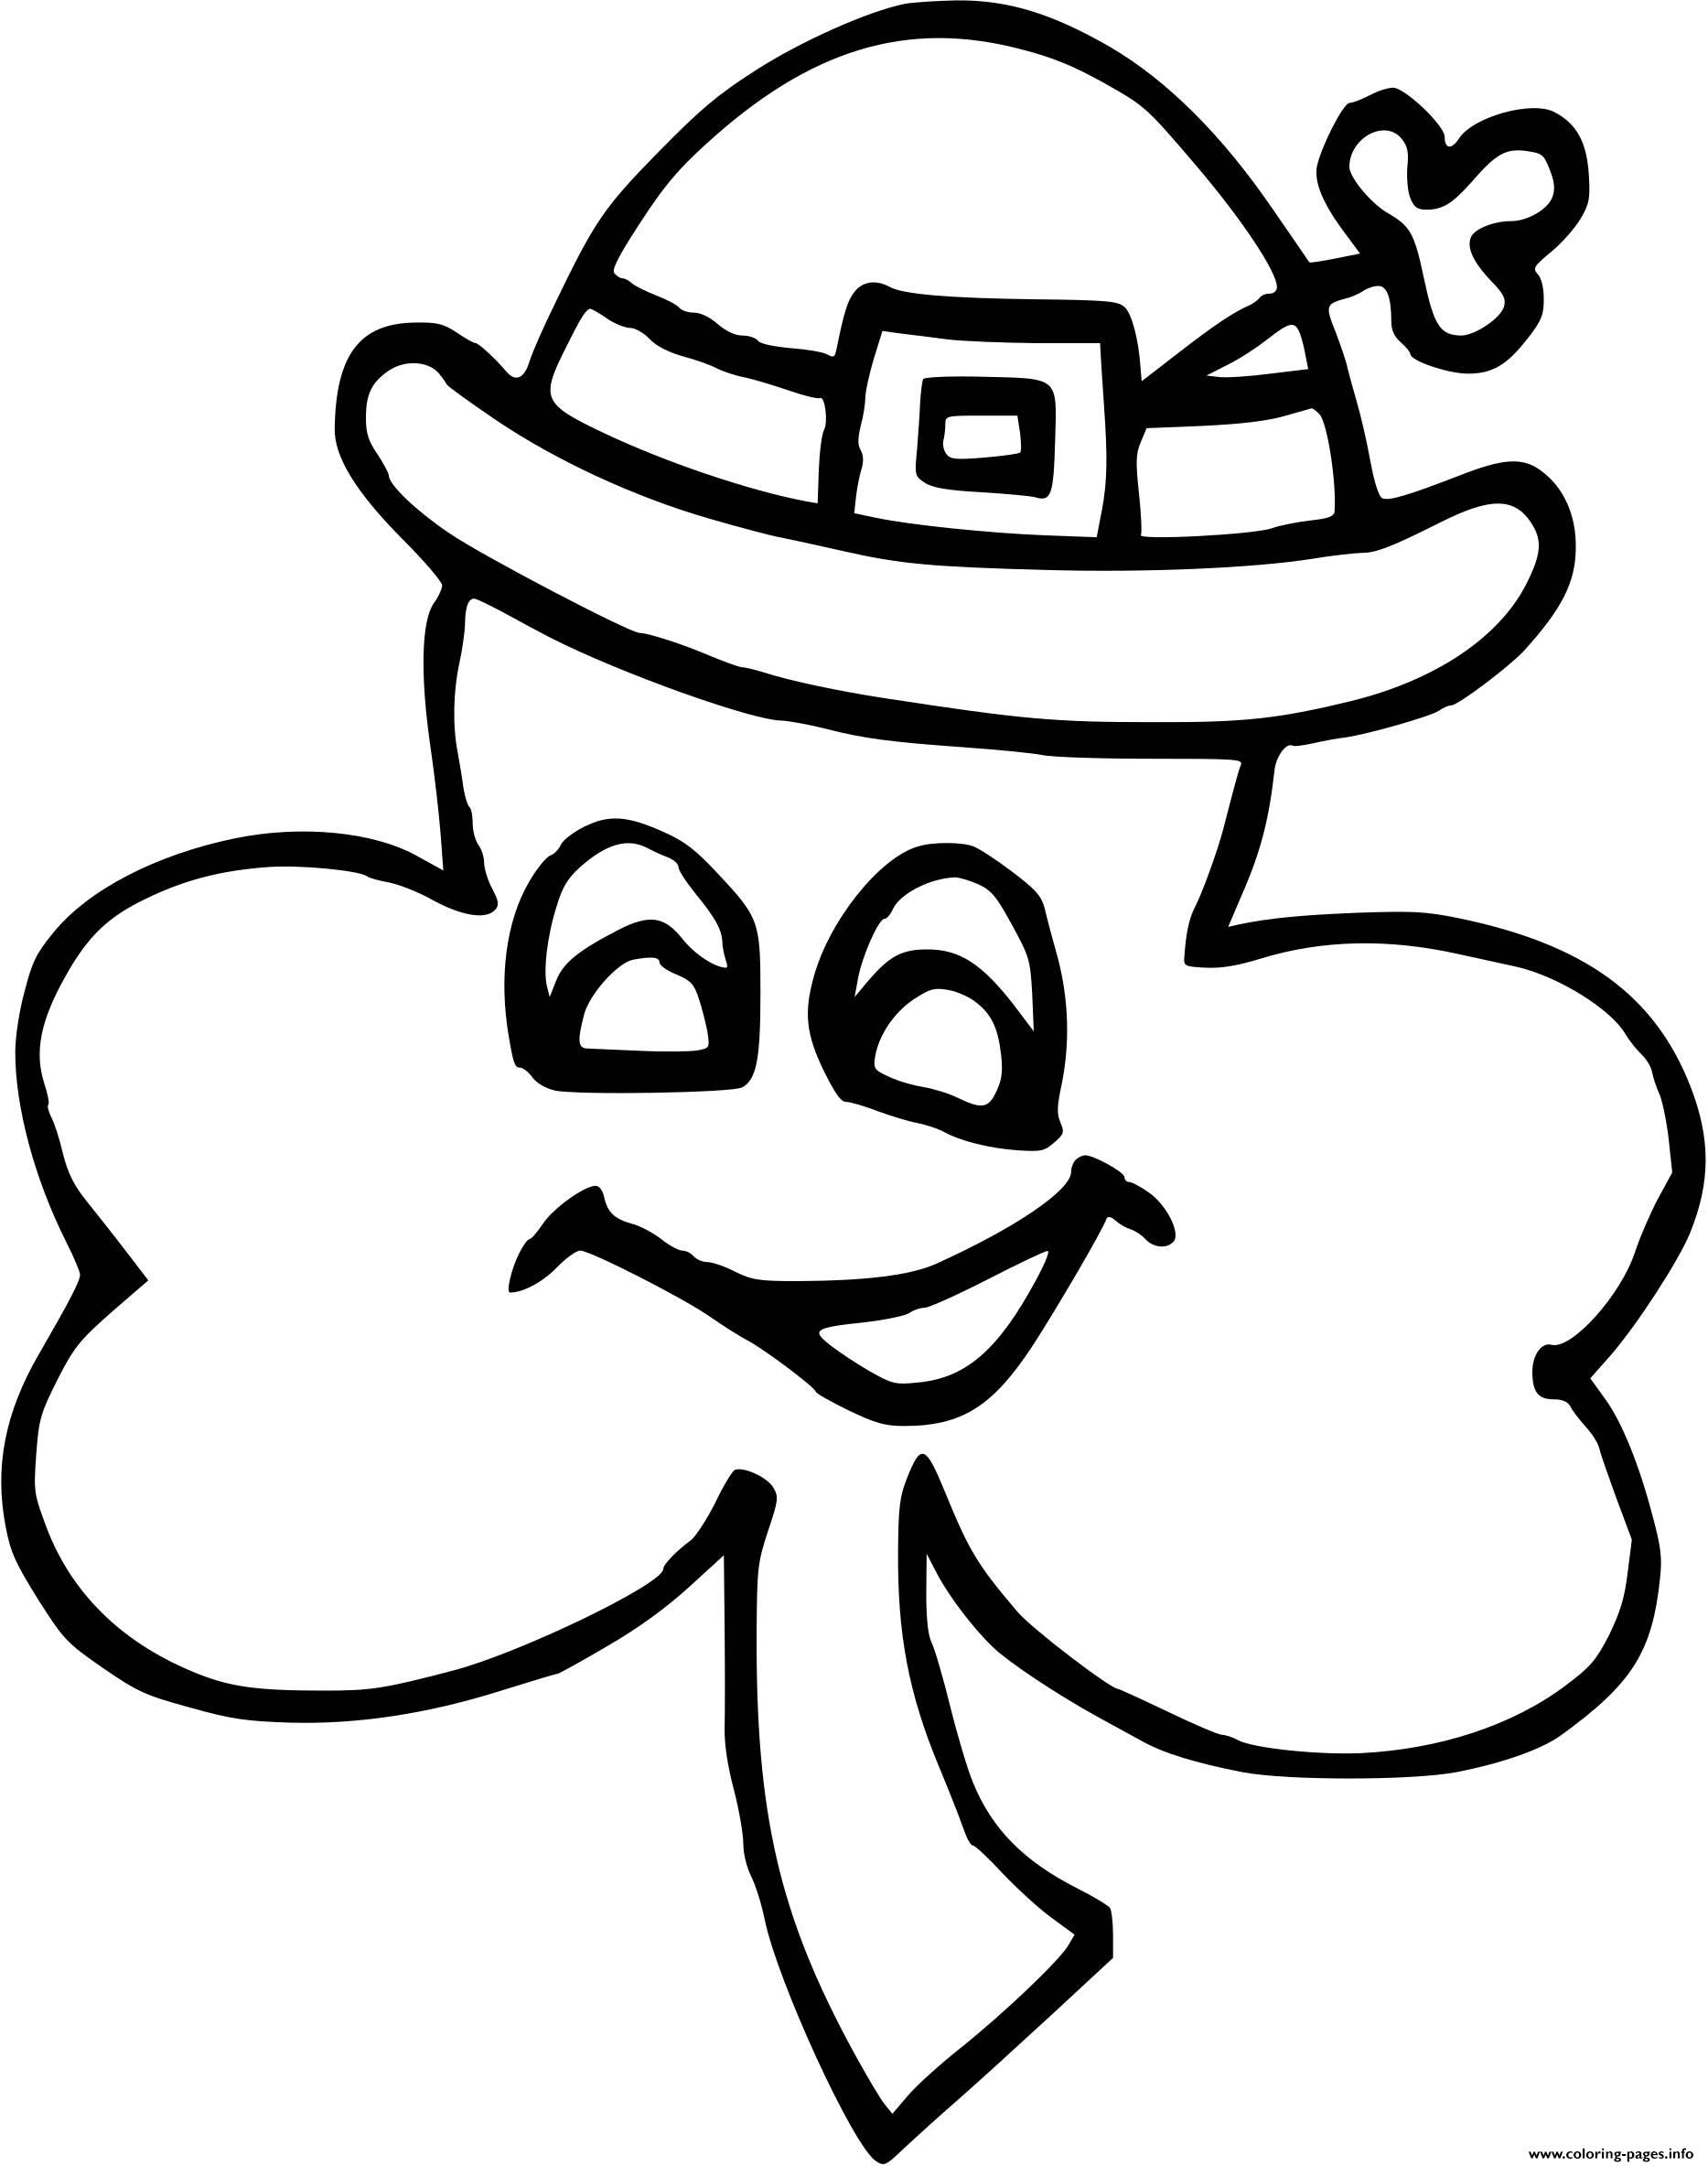 Leaf Funny St Patricks coloring pages